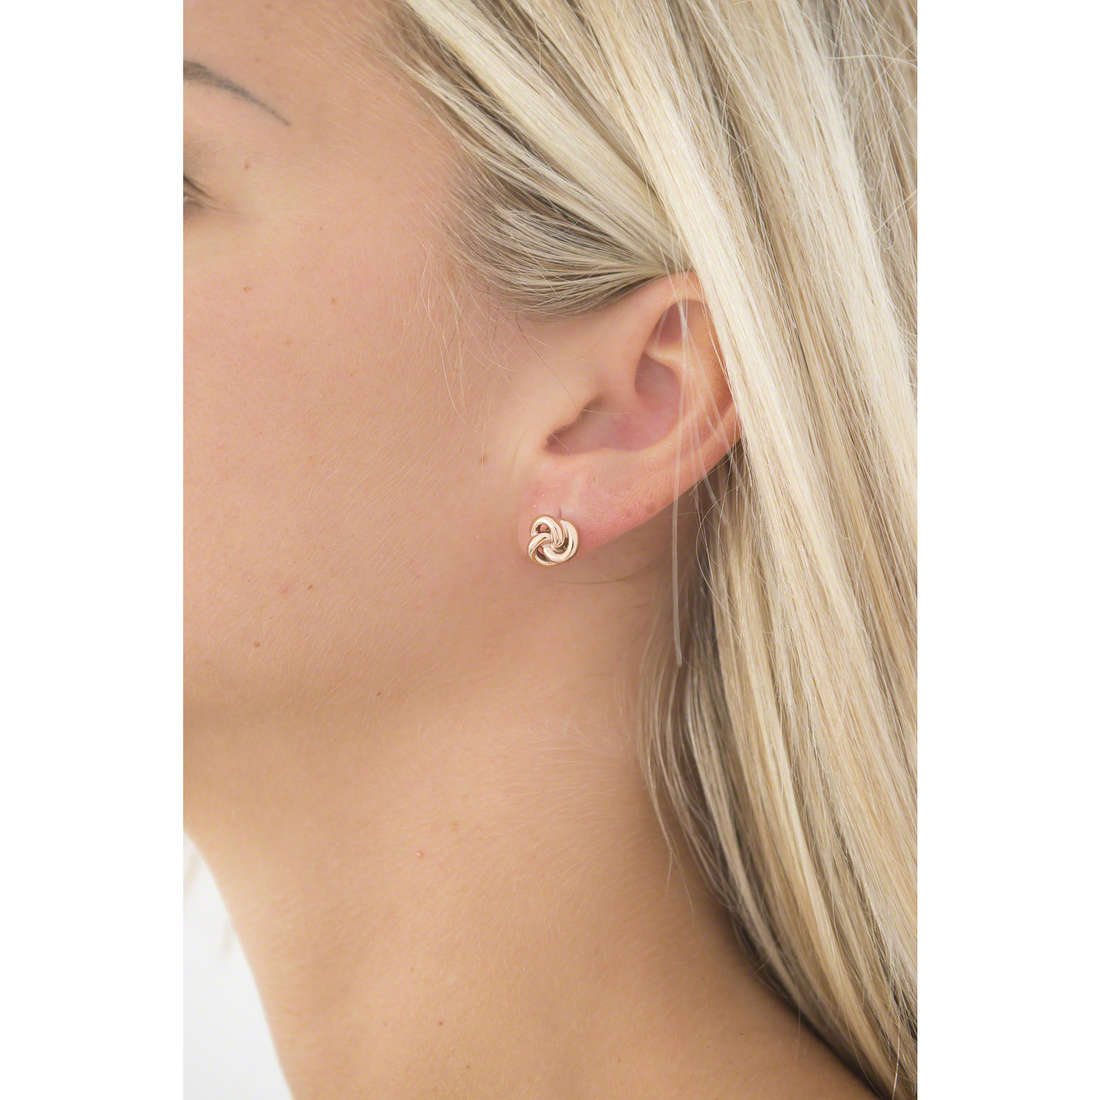 Fossil boucles d'oreille Summer 15 femme JF01364791 indosso